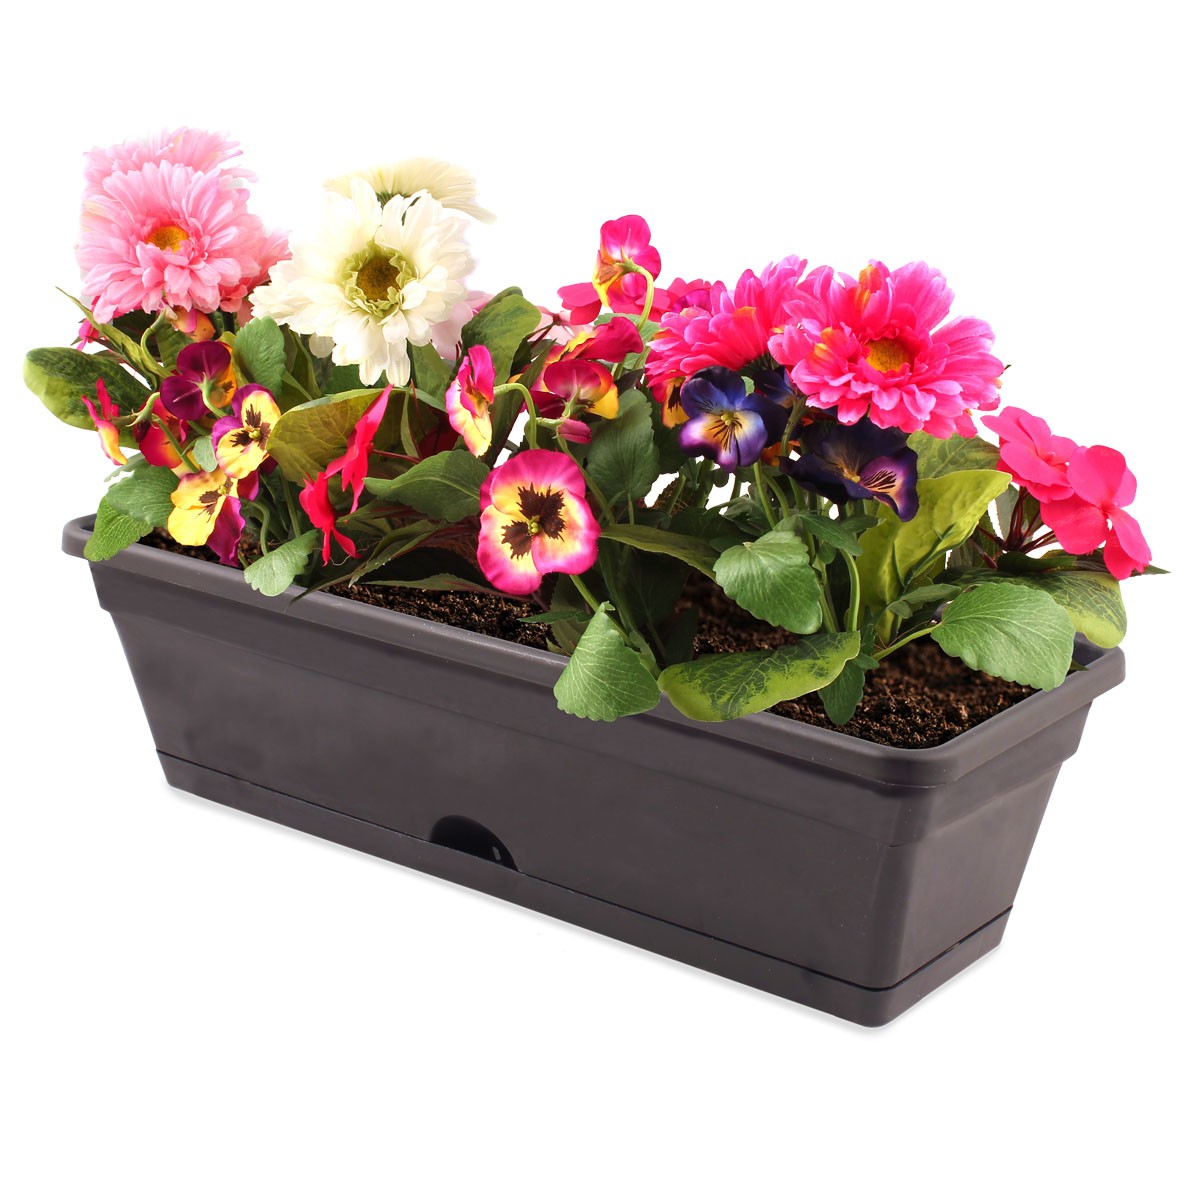 18442 Garden Up Classic Pot Charcoal with flowers